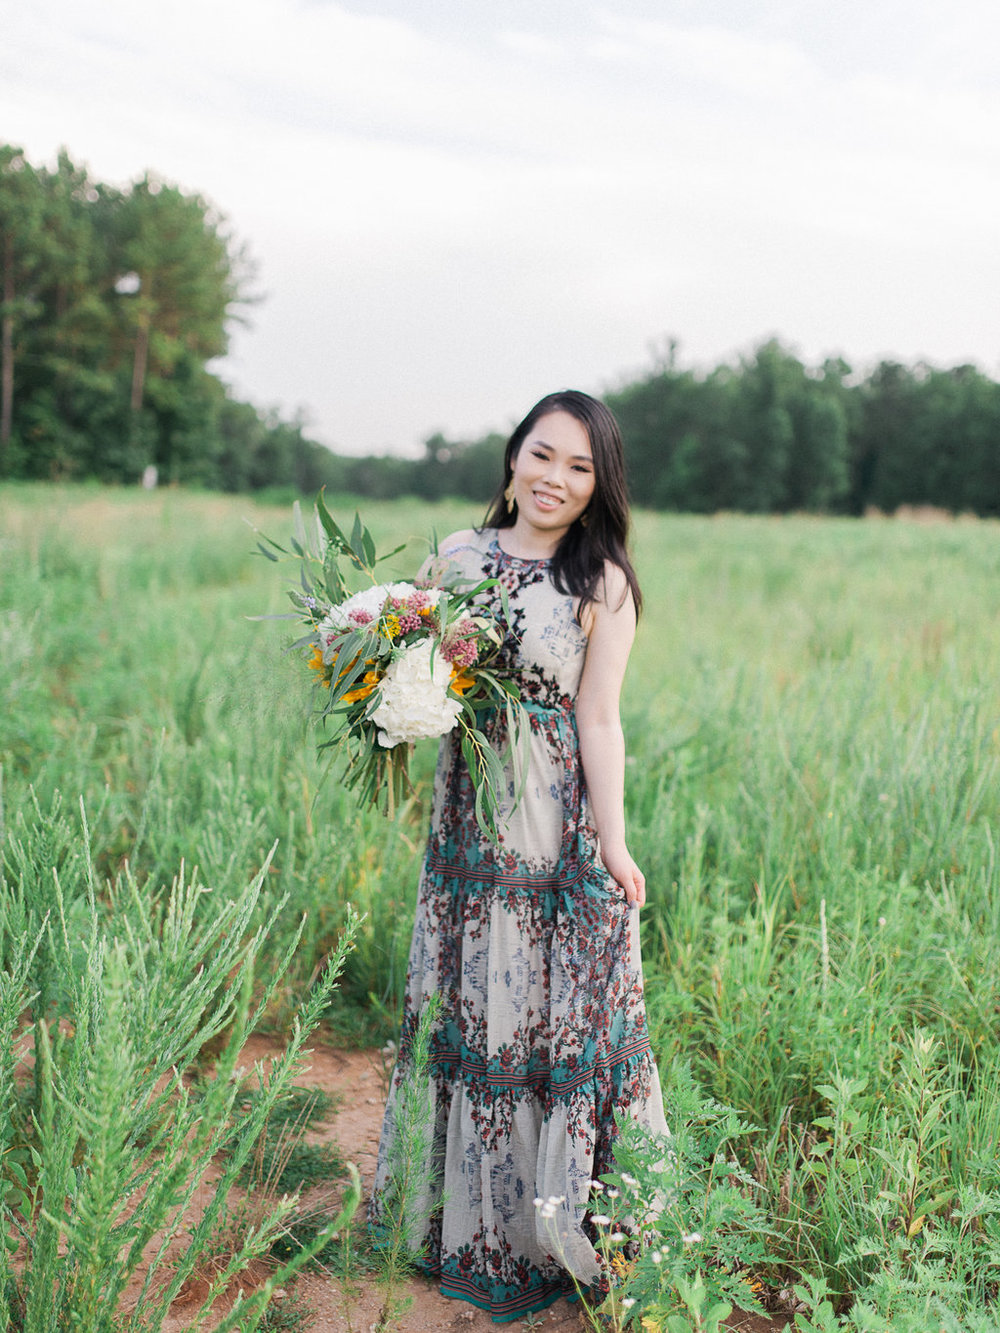 Serenbe-Farms-Engagement-atlanta-wedding-photographer-hannah-forsberg-11.jpg